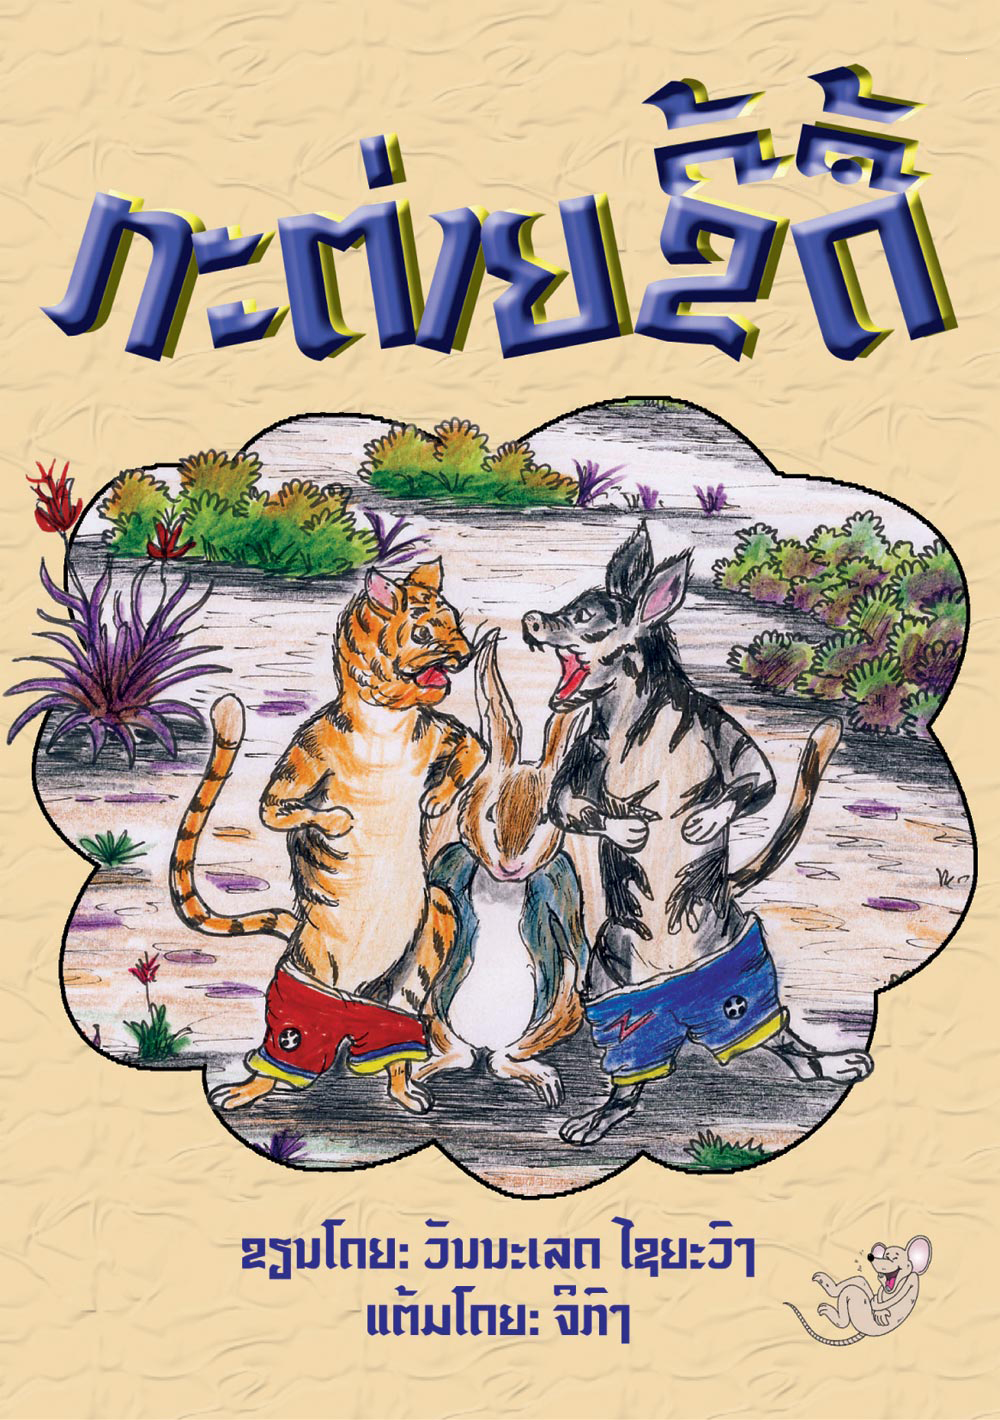 The Naughty Rabbit large book cover, published in Lao language